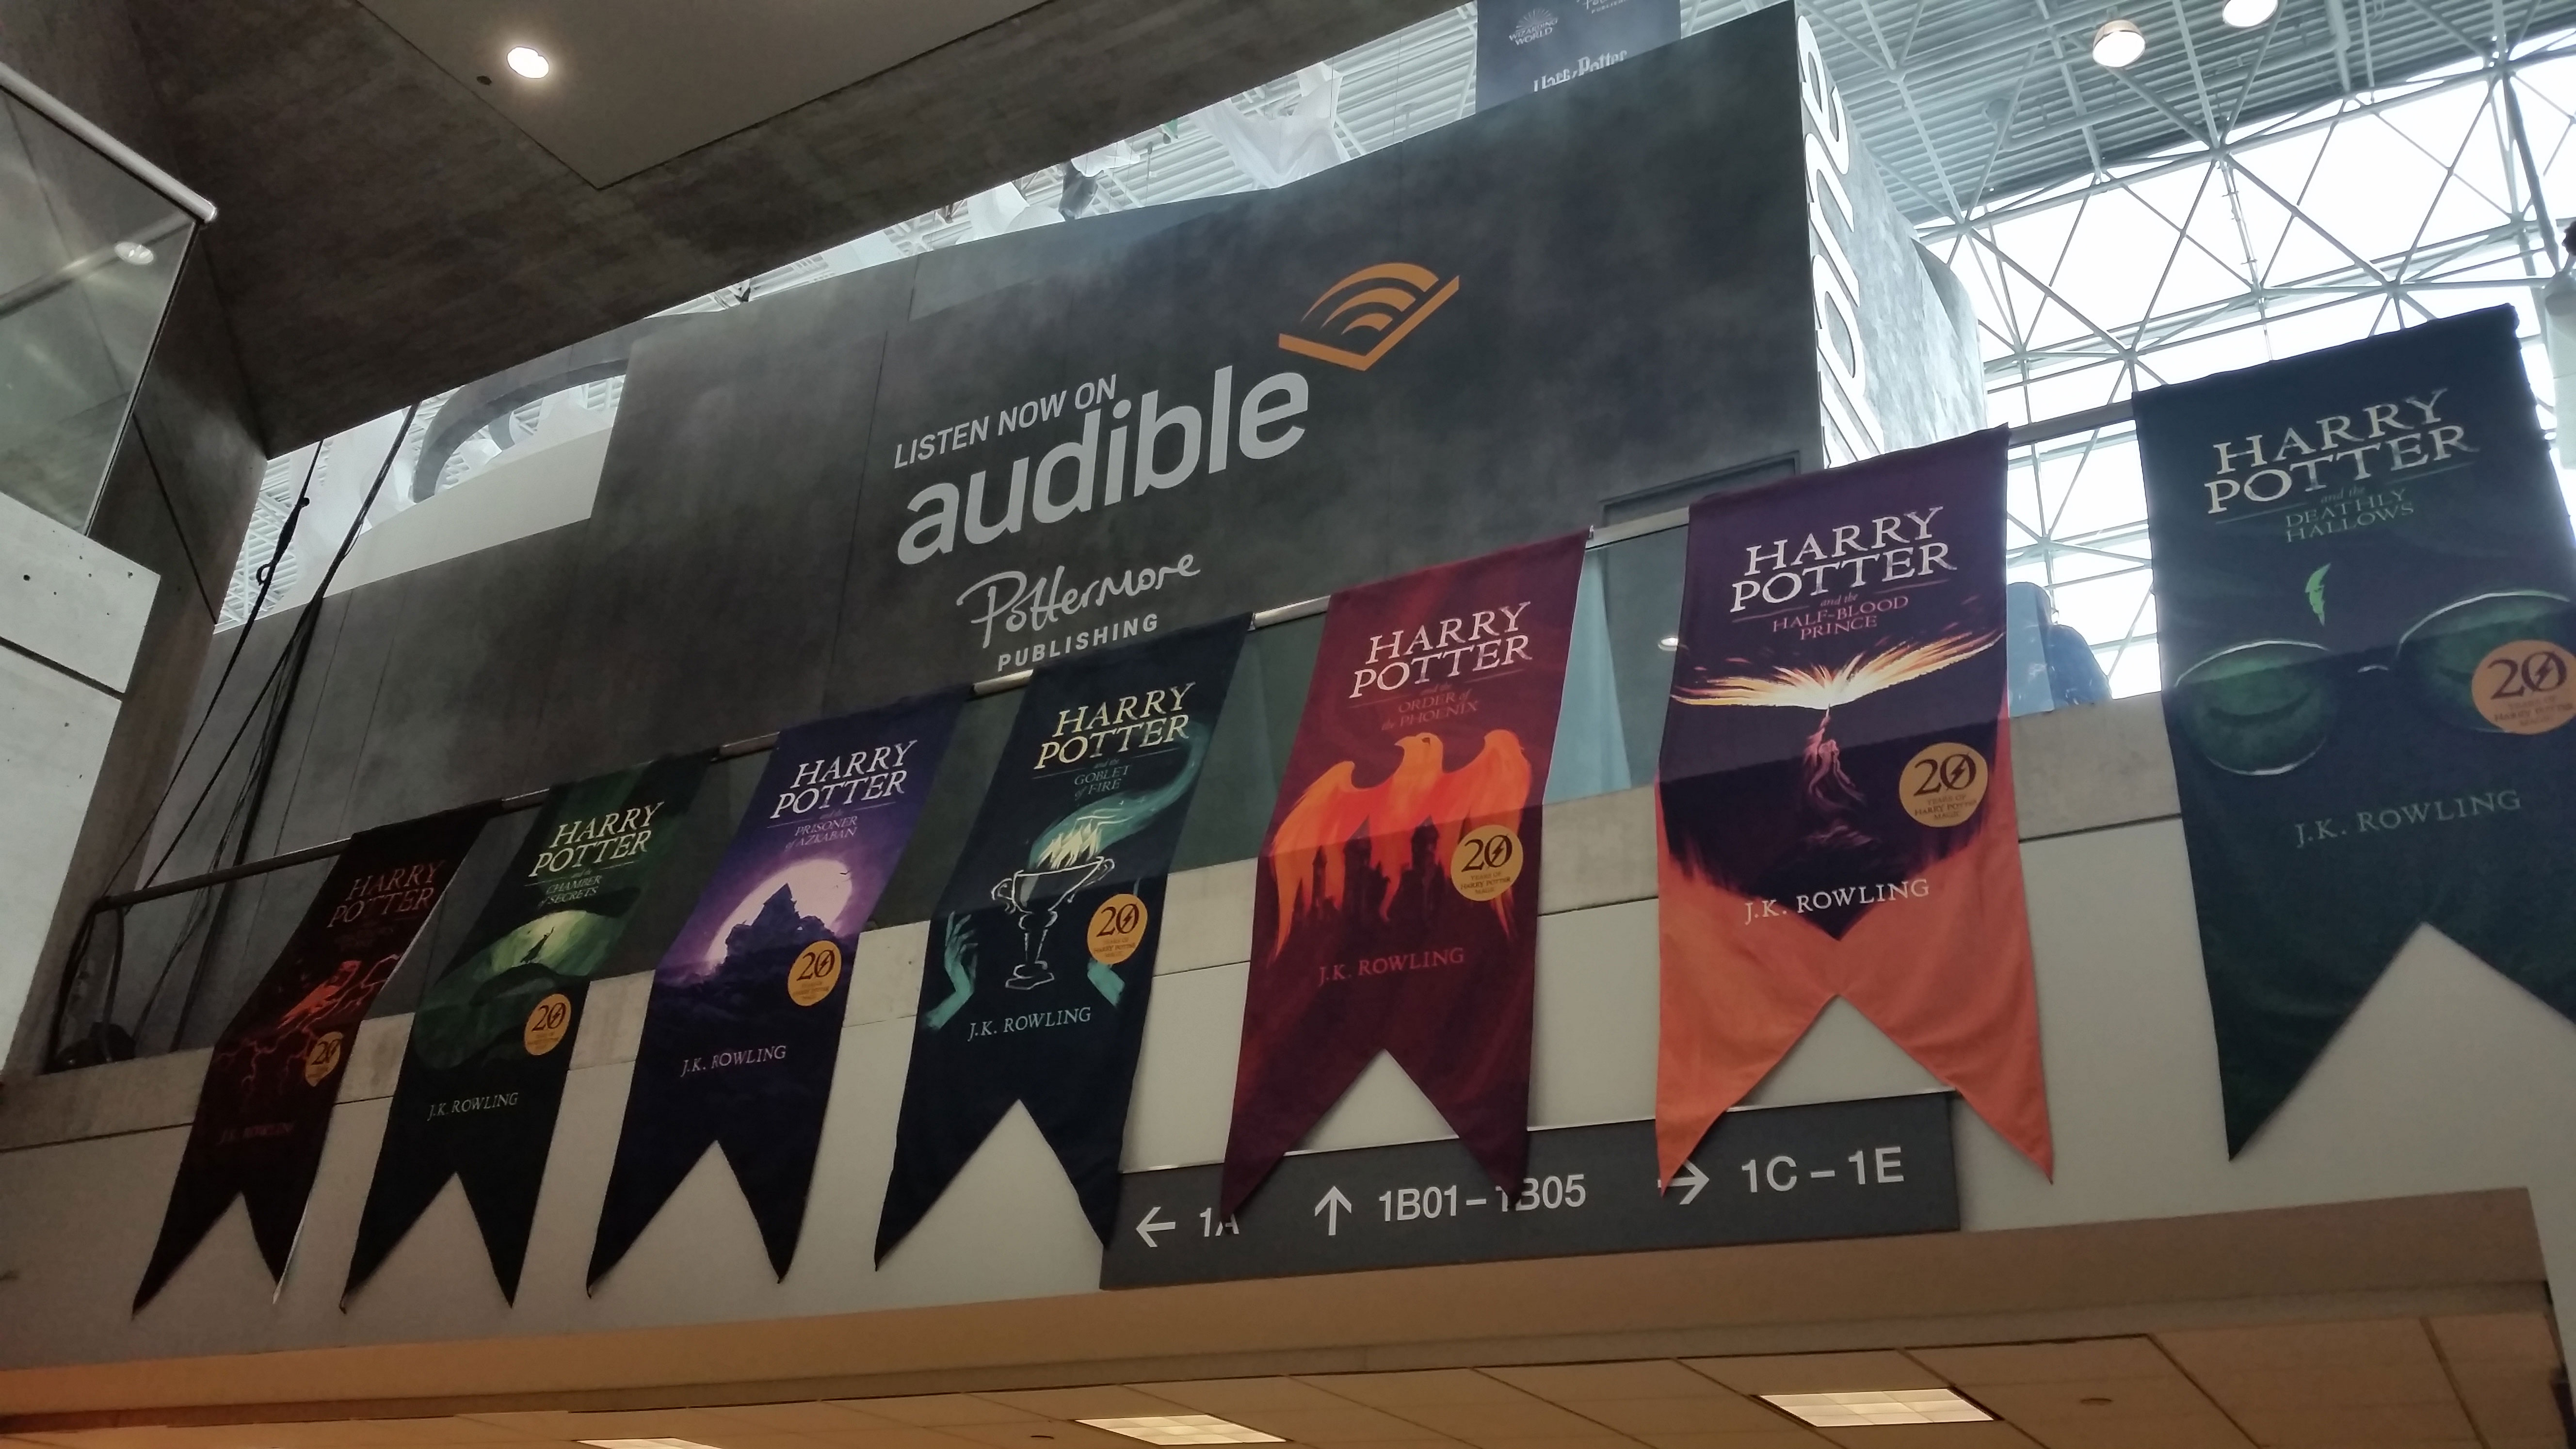 New York Comic Con (2018) – Audible Pensieve Experience book banners